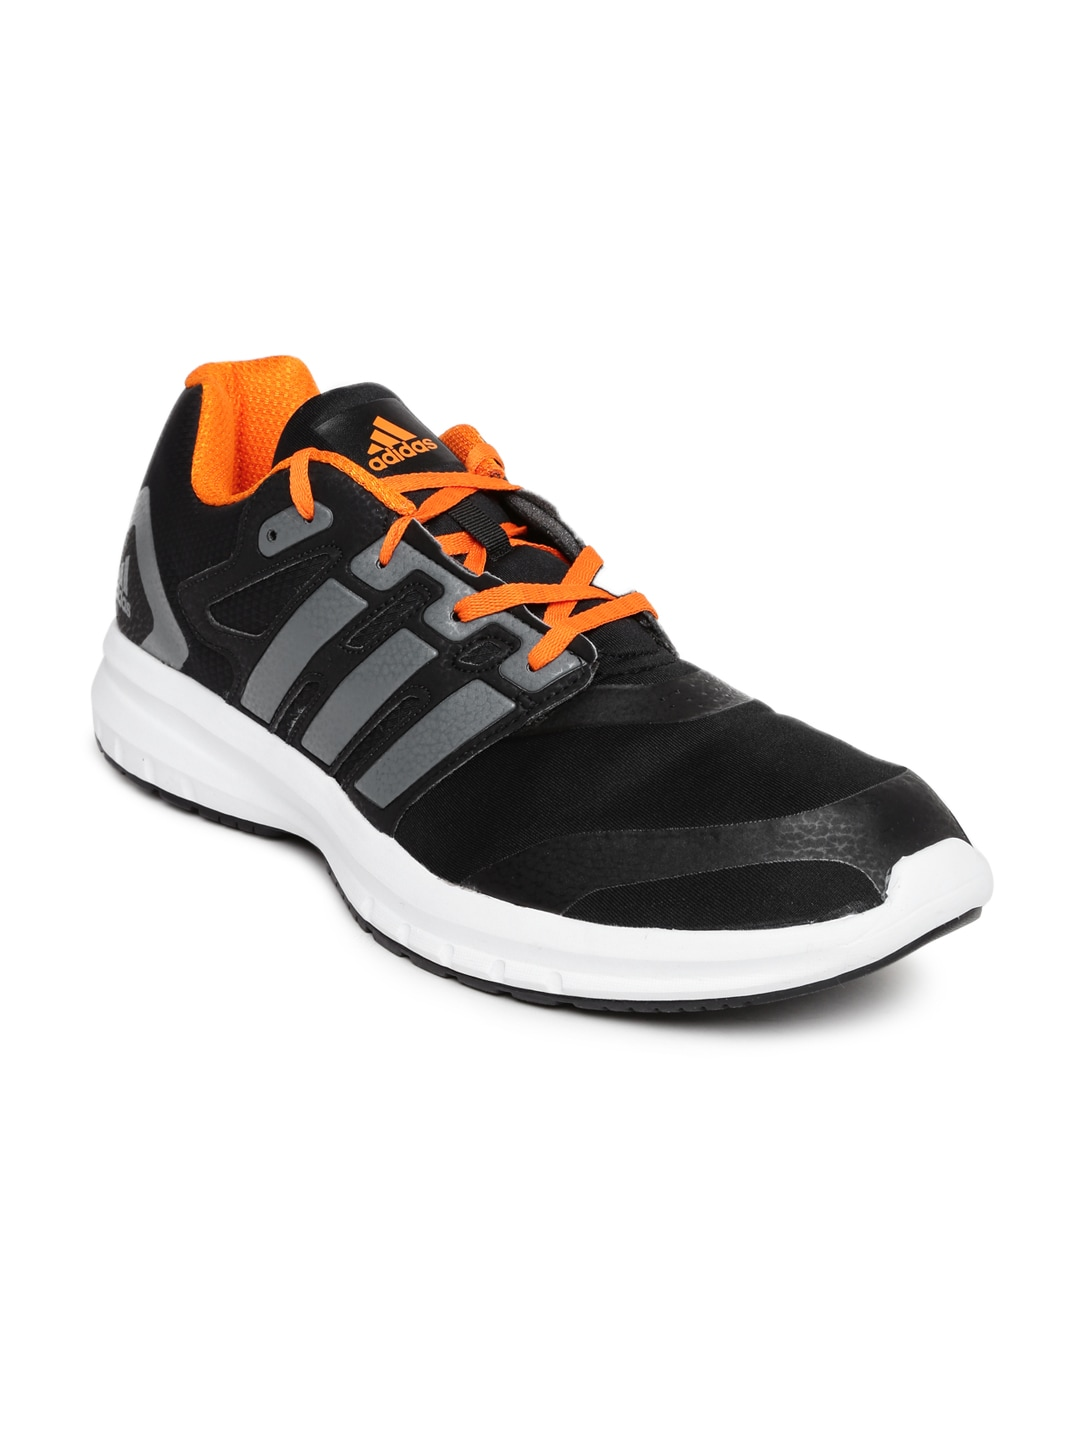 brand new 1899b 08833 Adidas ba2793 Men Black Solonyx 1 0 Running Shoes- Price in India